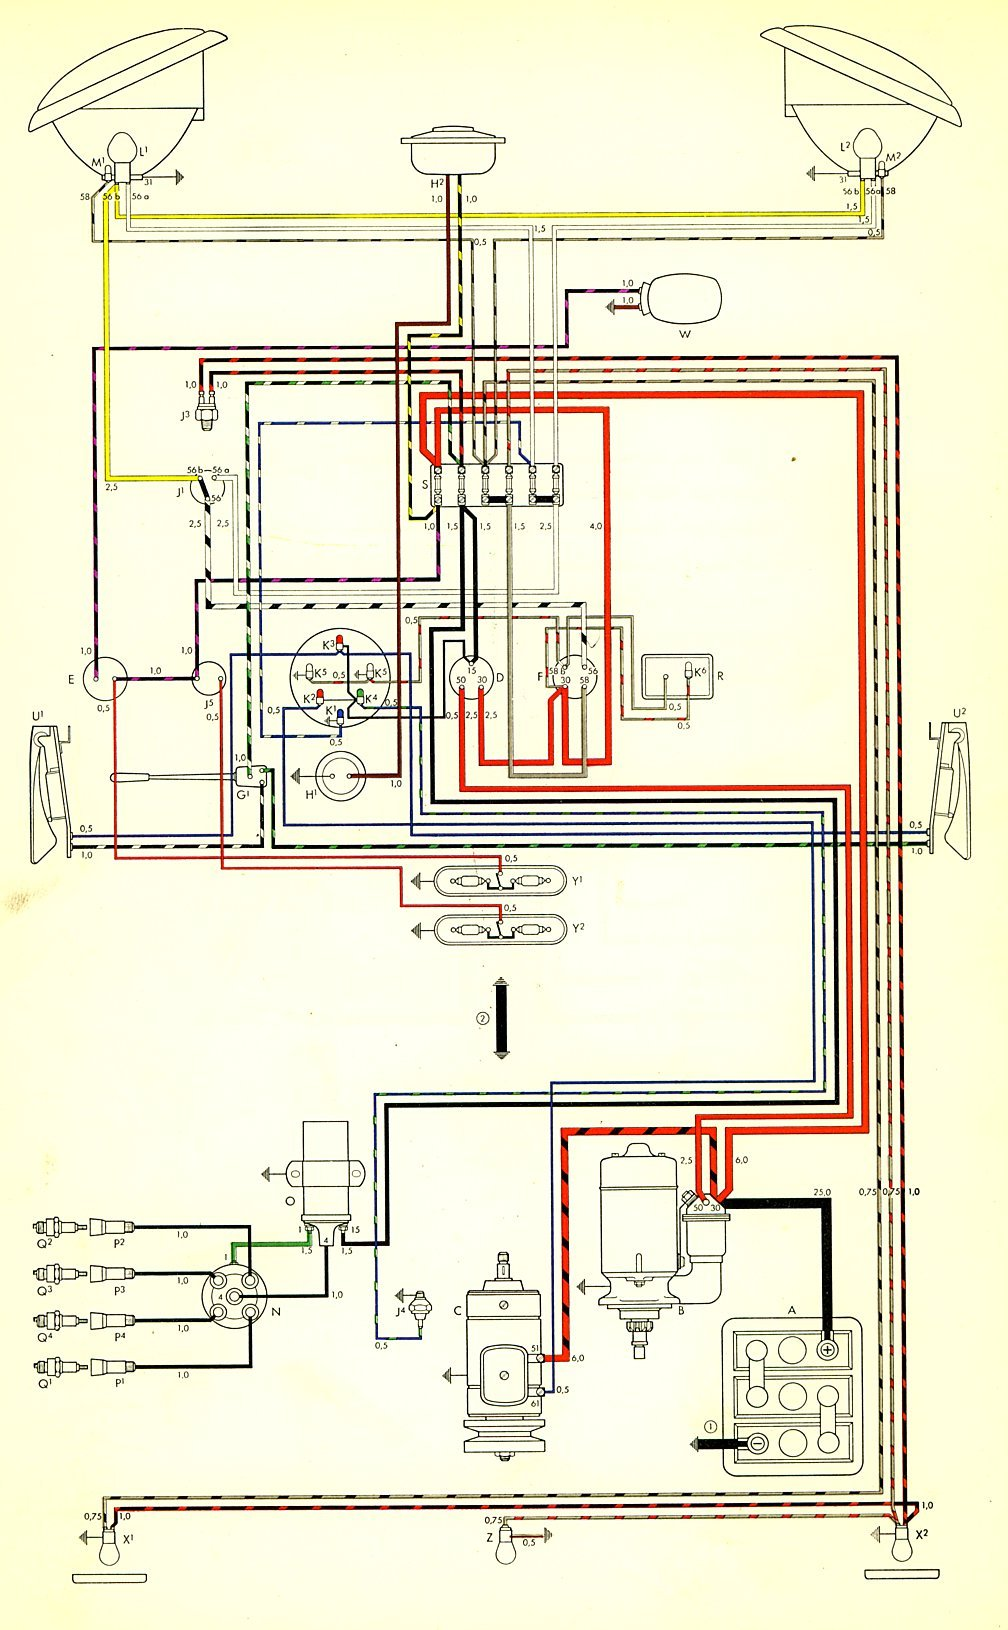 bus_59 1959 bus wiring diagram thegoldenbug com 1957 vw bug wiring diagram at edmiracle.co